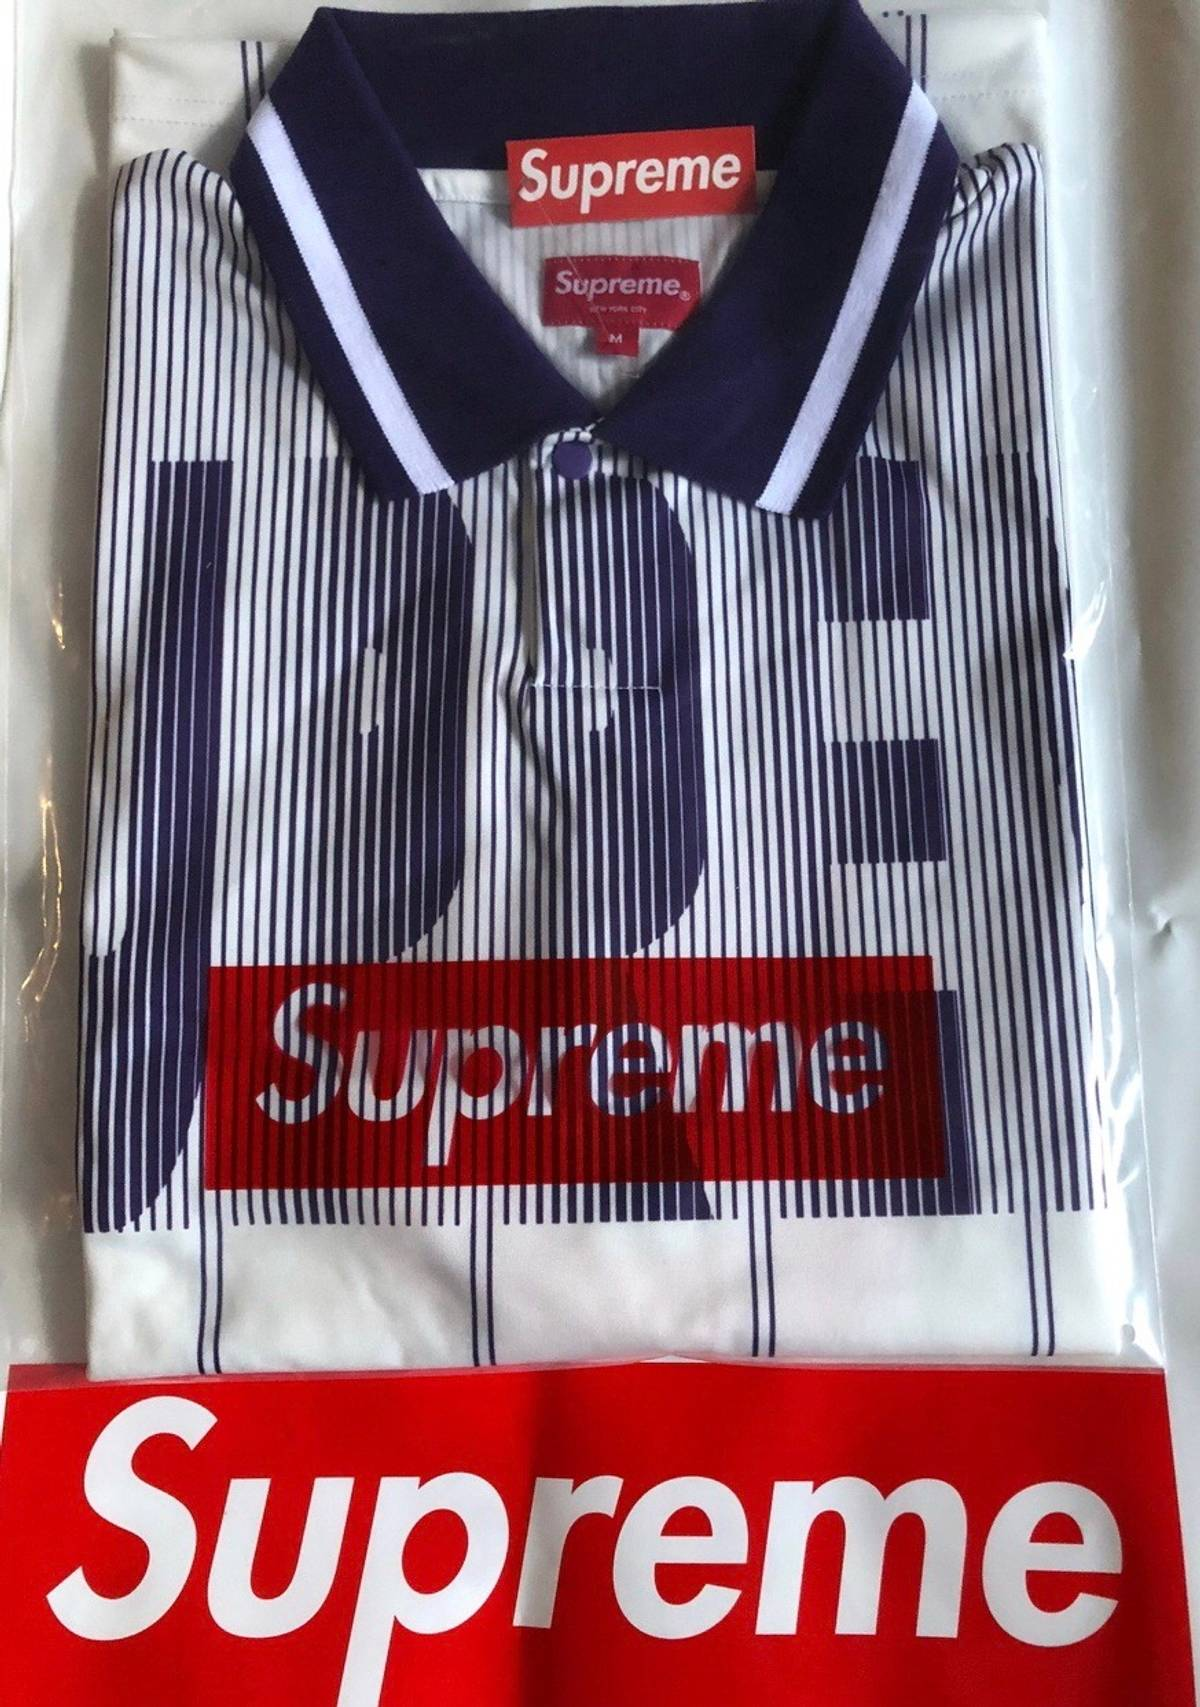 Supreme Supreme Soccer Polo Jersey Whitepurple M In Hand Ready To